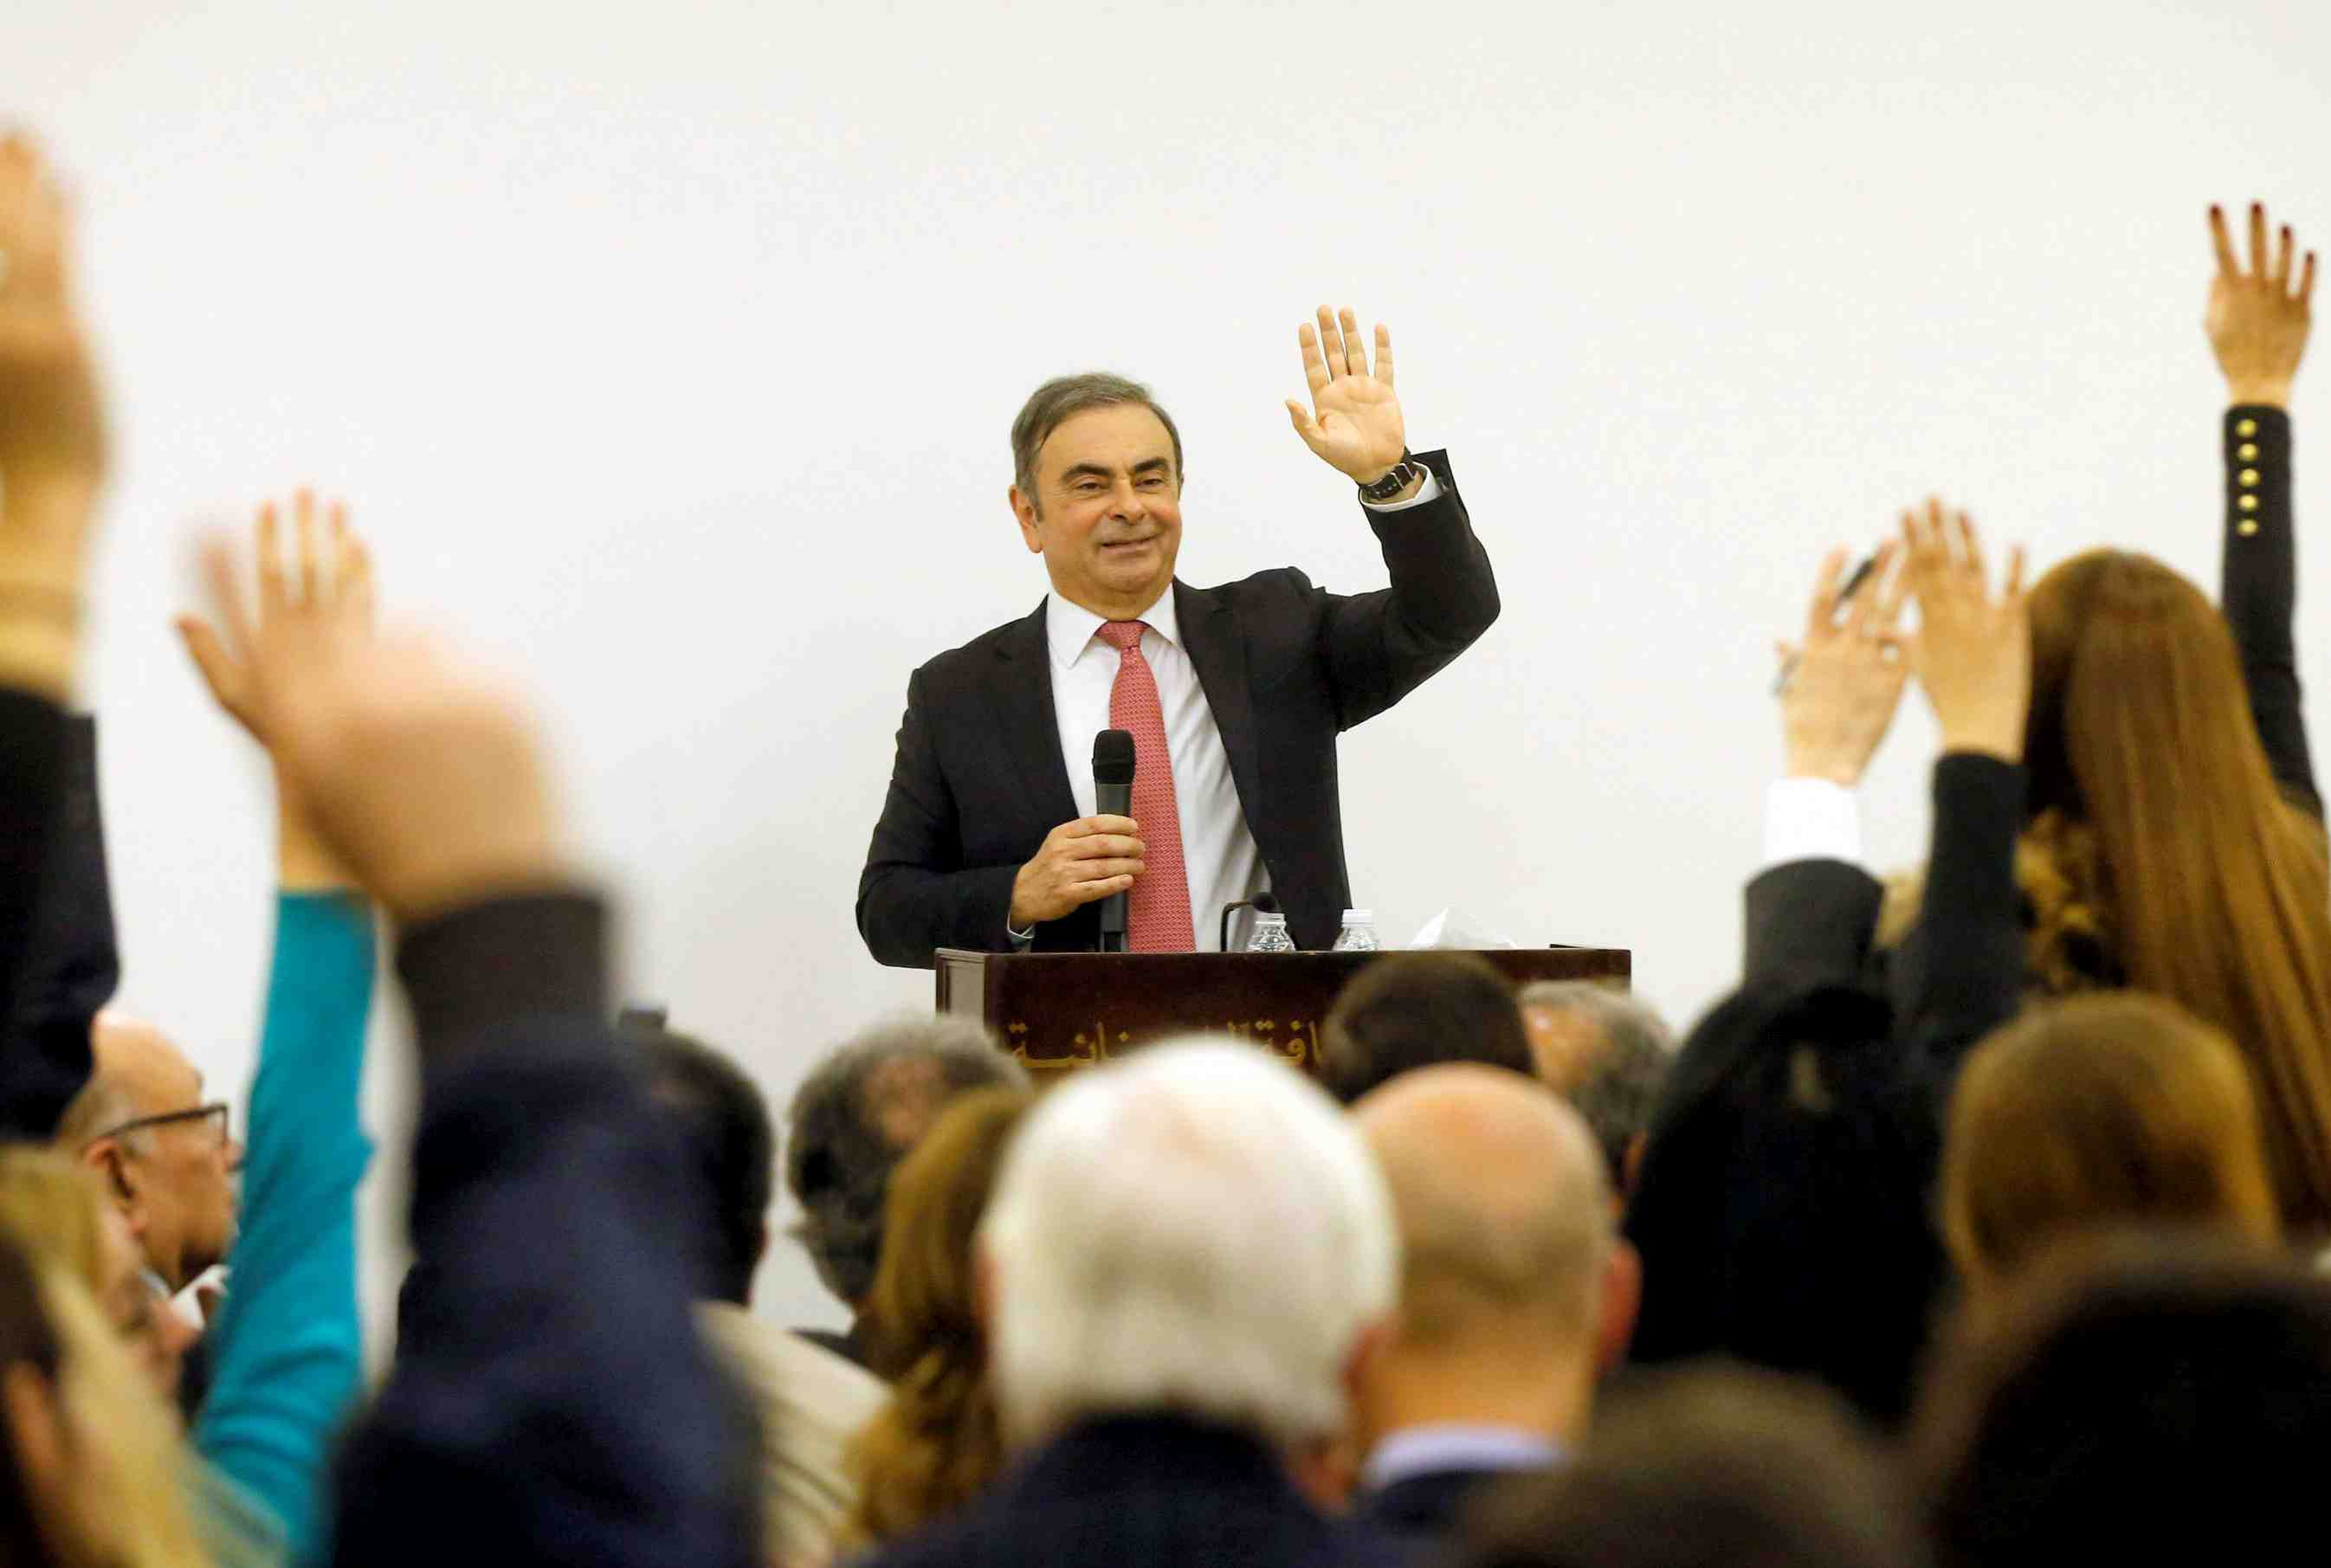 Former Nissan chairman Carlos Ghosn answers questions during a news conference at the Lebanese Press Syndicate in Beirut